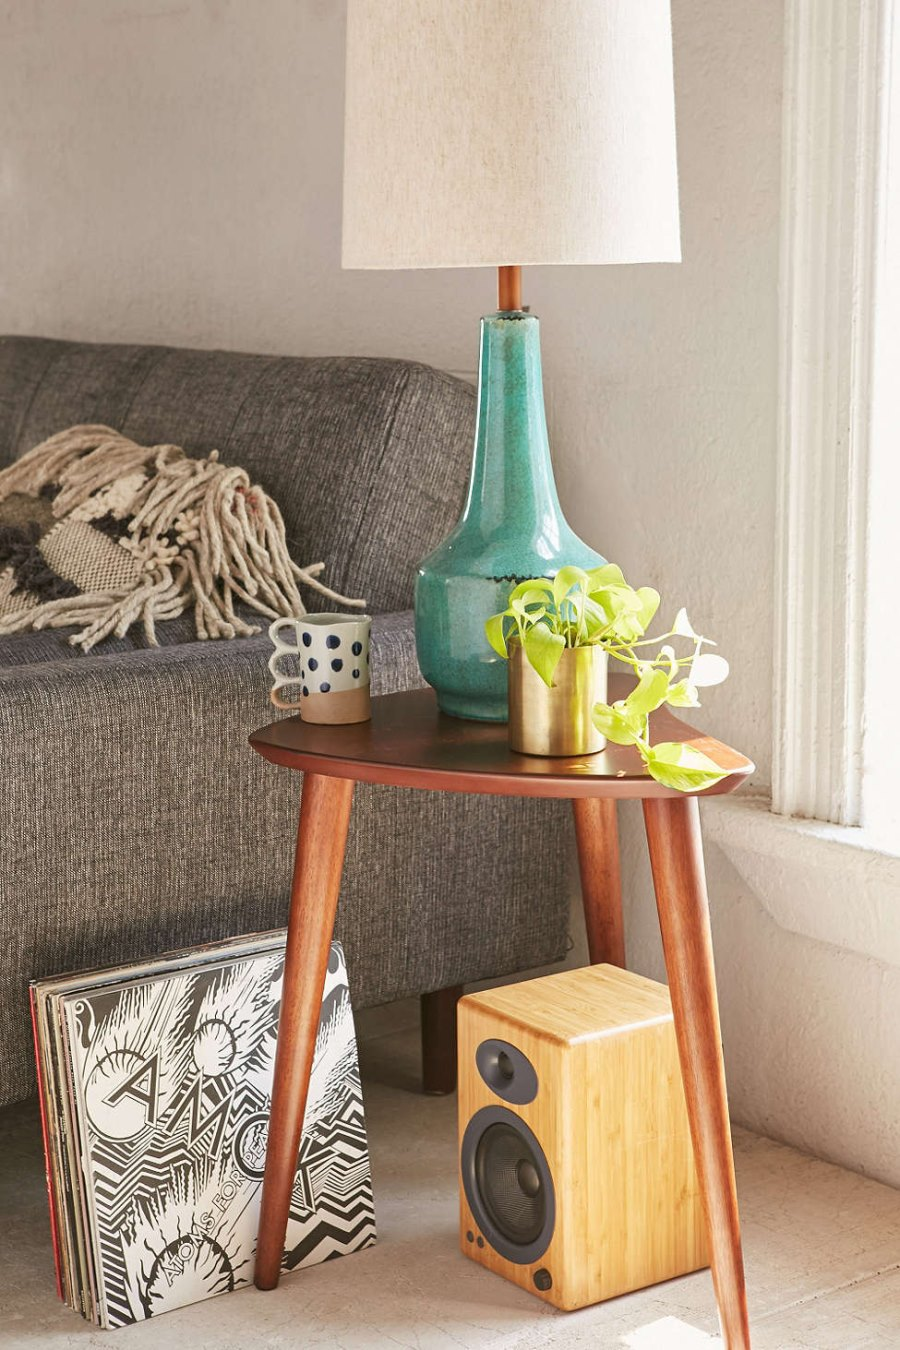 Midcentury-style side table from Urban Outfitters